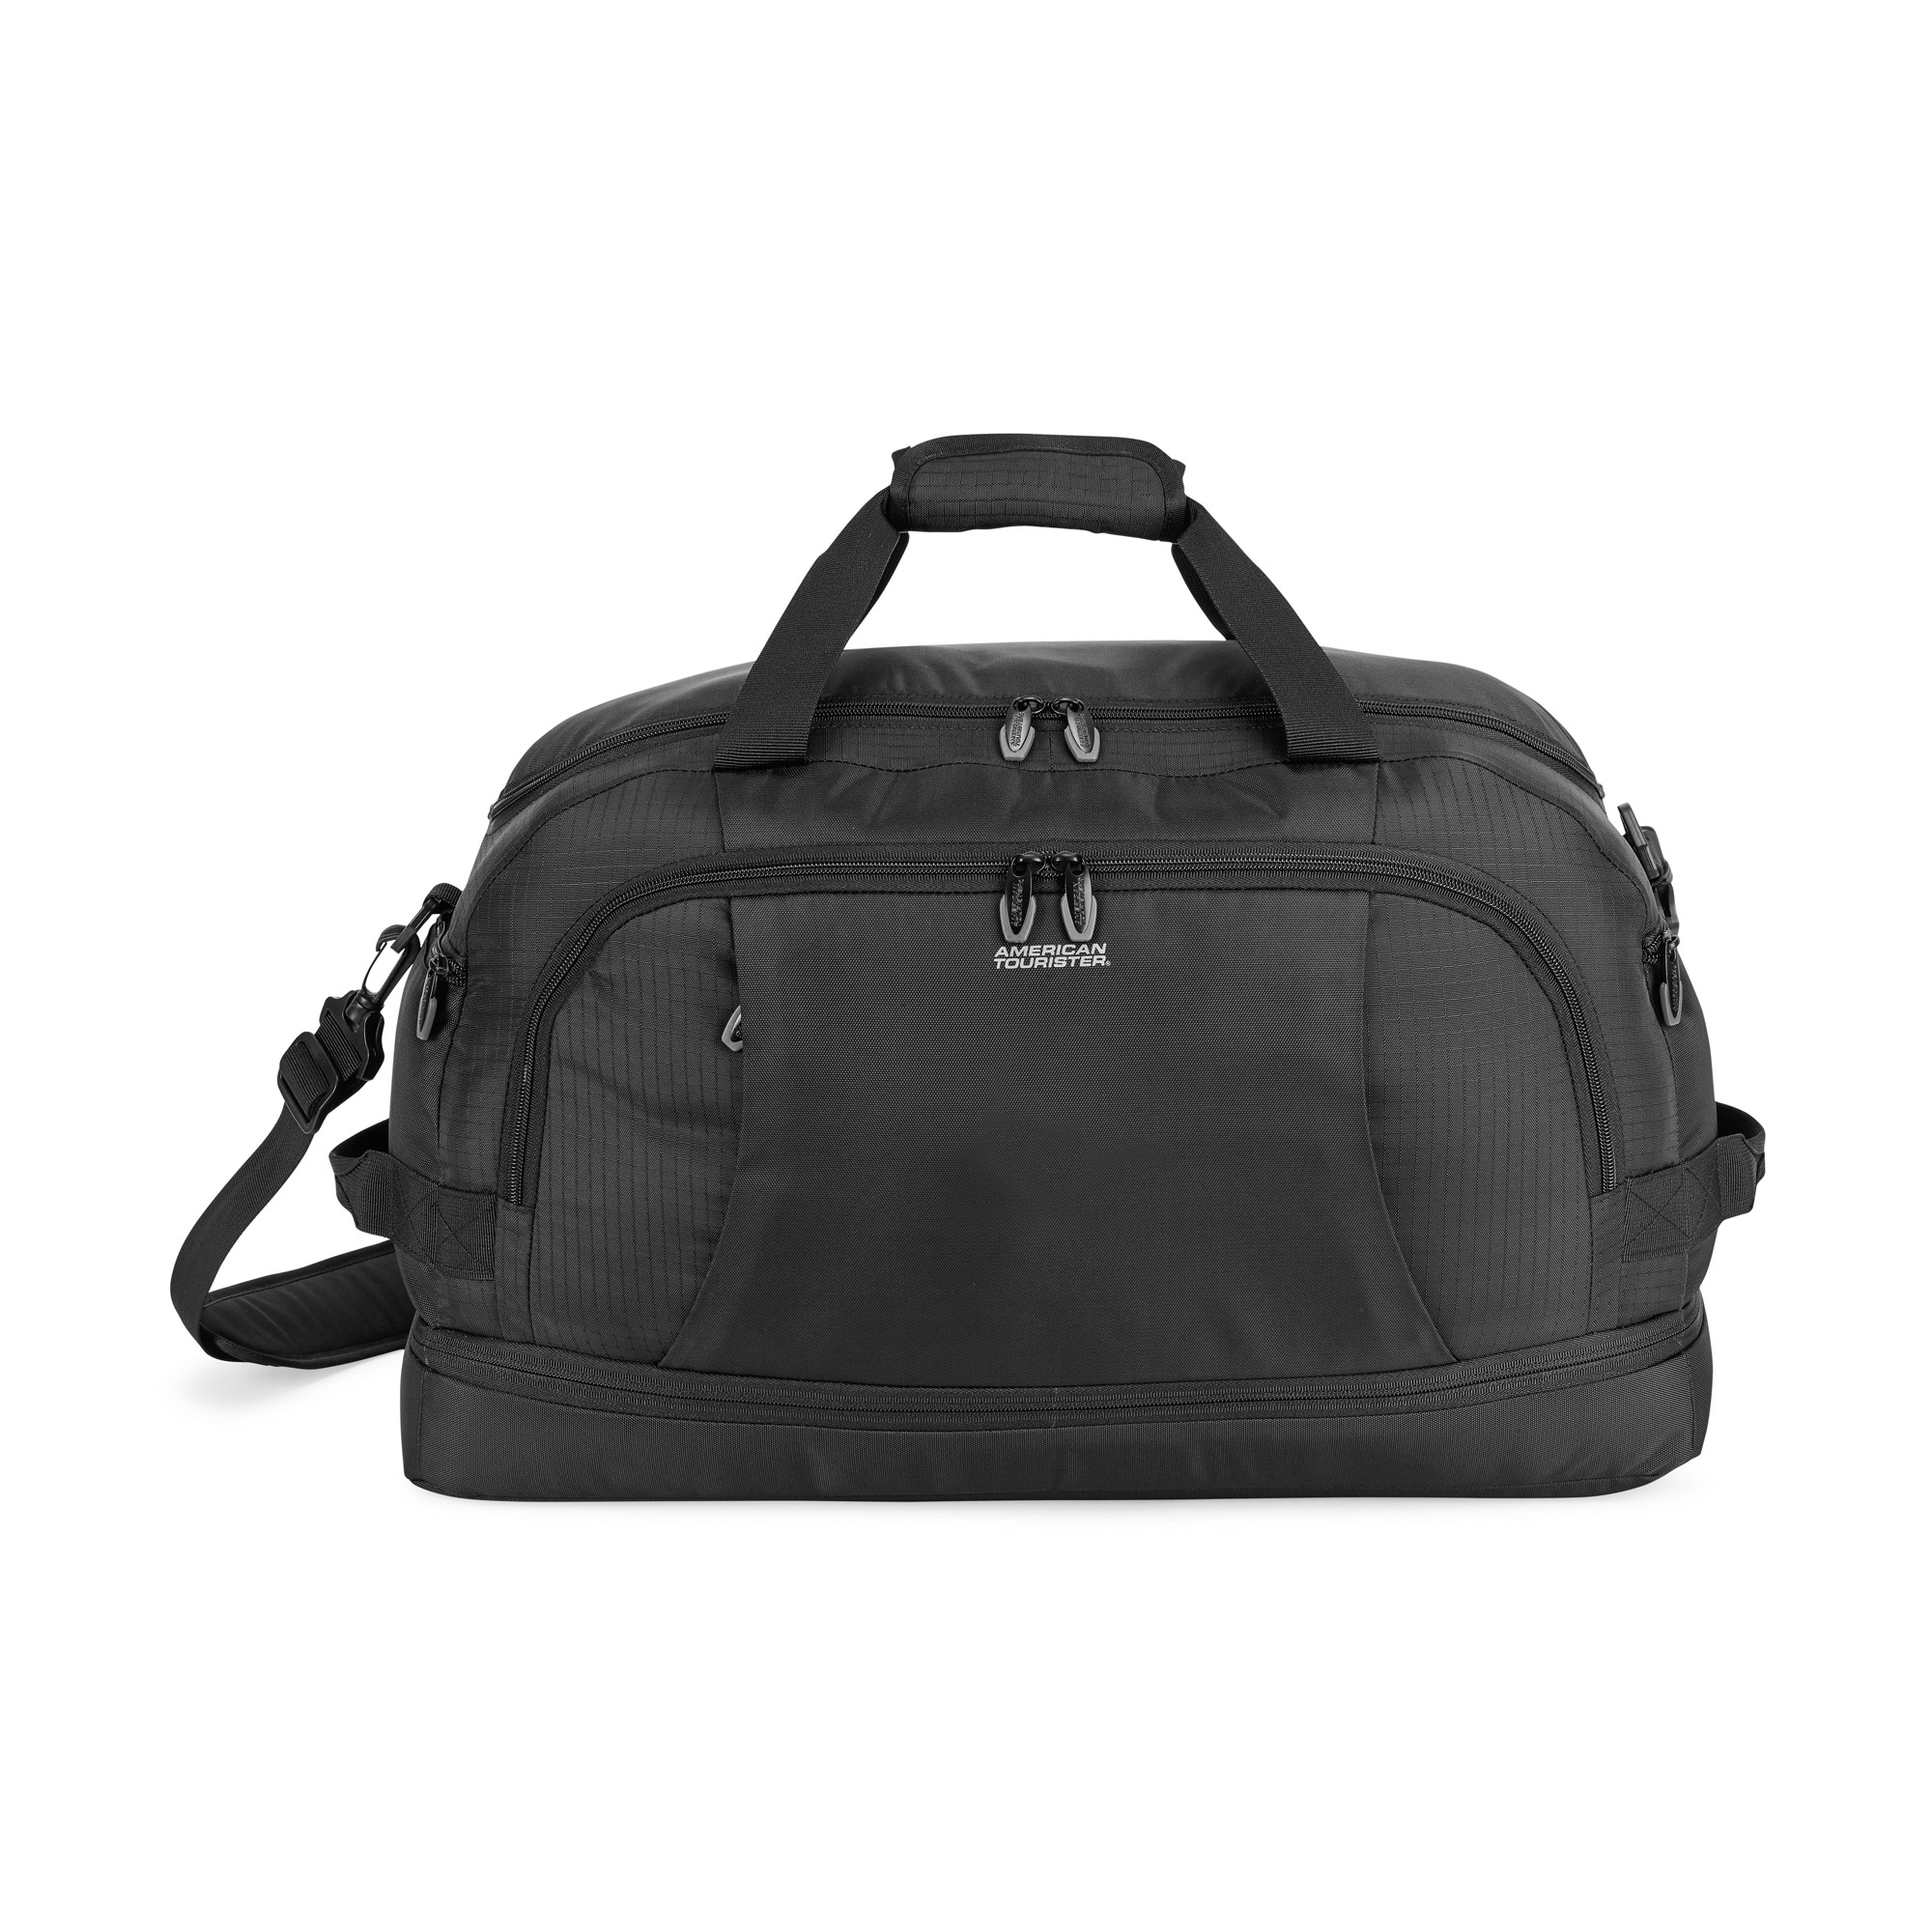 Large duffel with wide mouth top opening to allow easy packing.